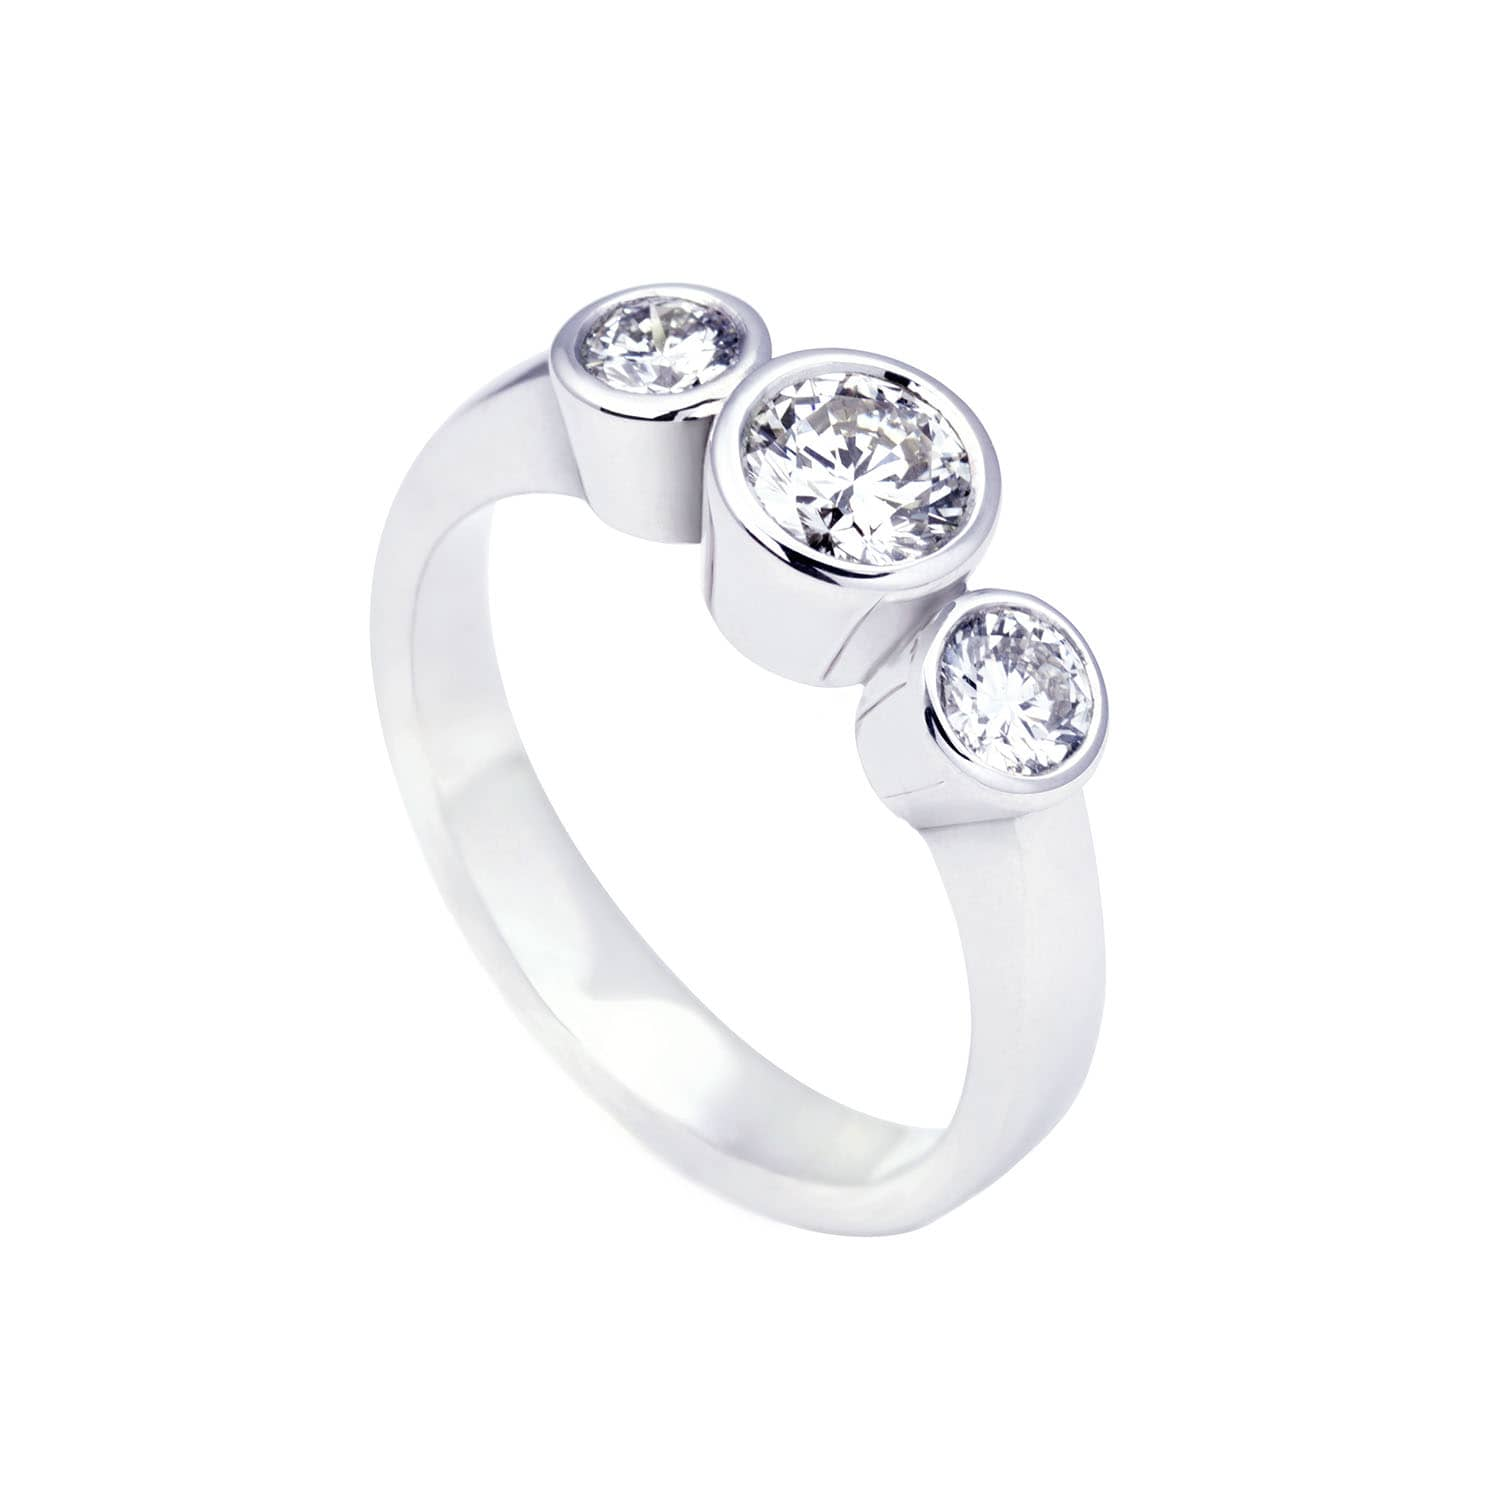 wesselton en rounded diamond jewelry product and sfera w diamants